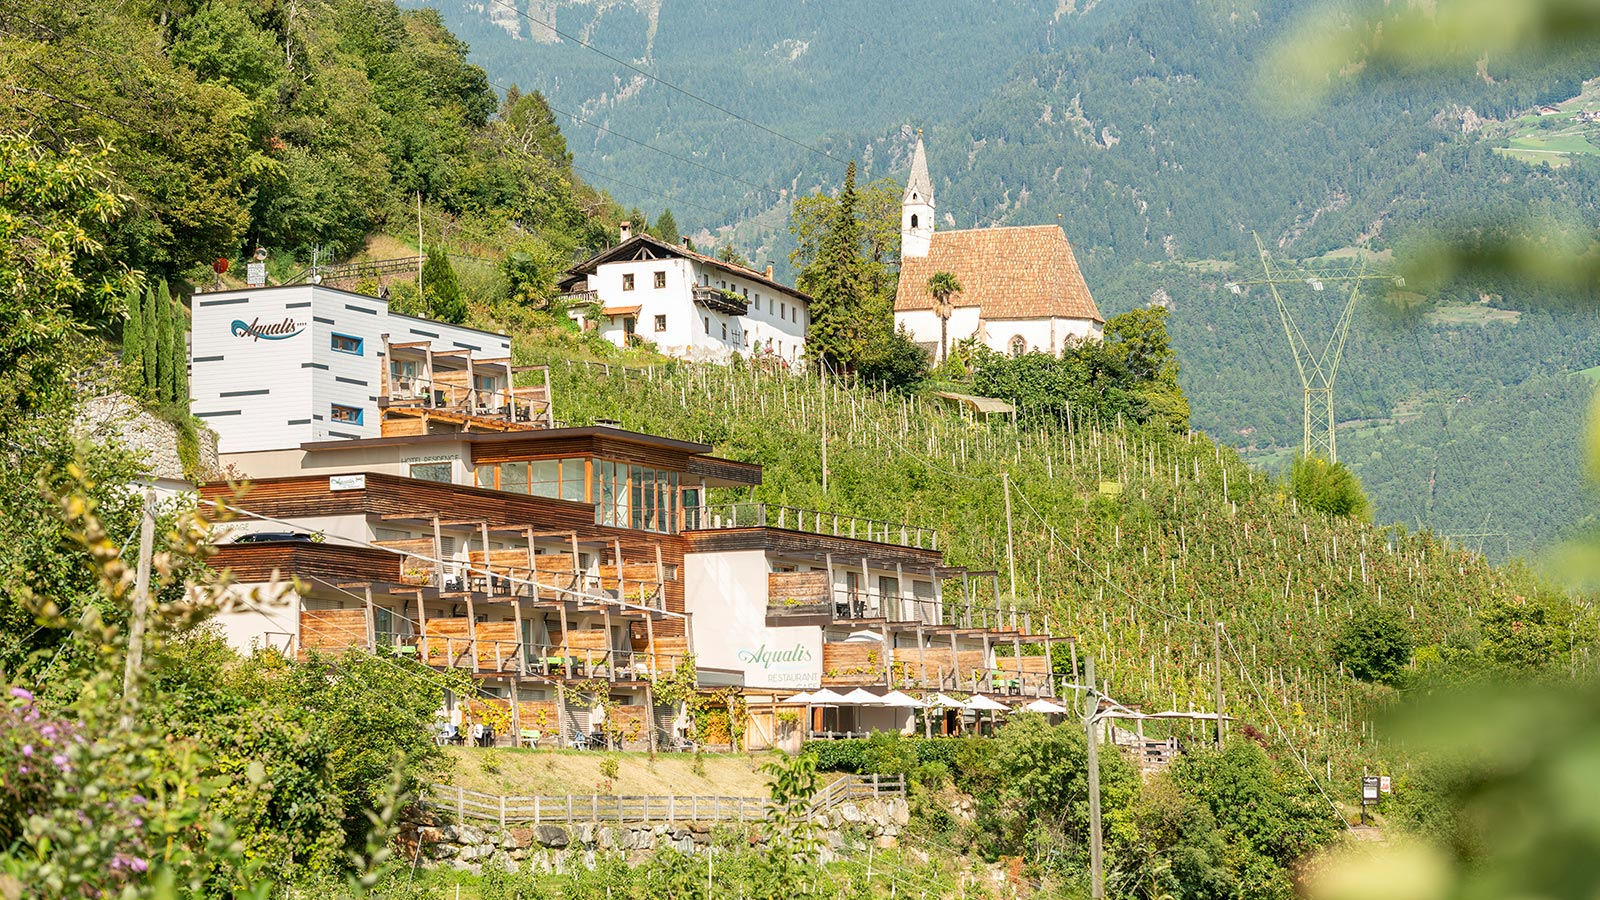 View of the Aqualis, our accommodation in Marlengo in South Tyrol